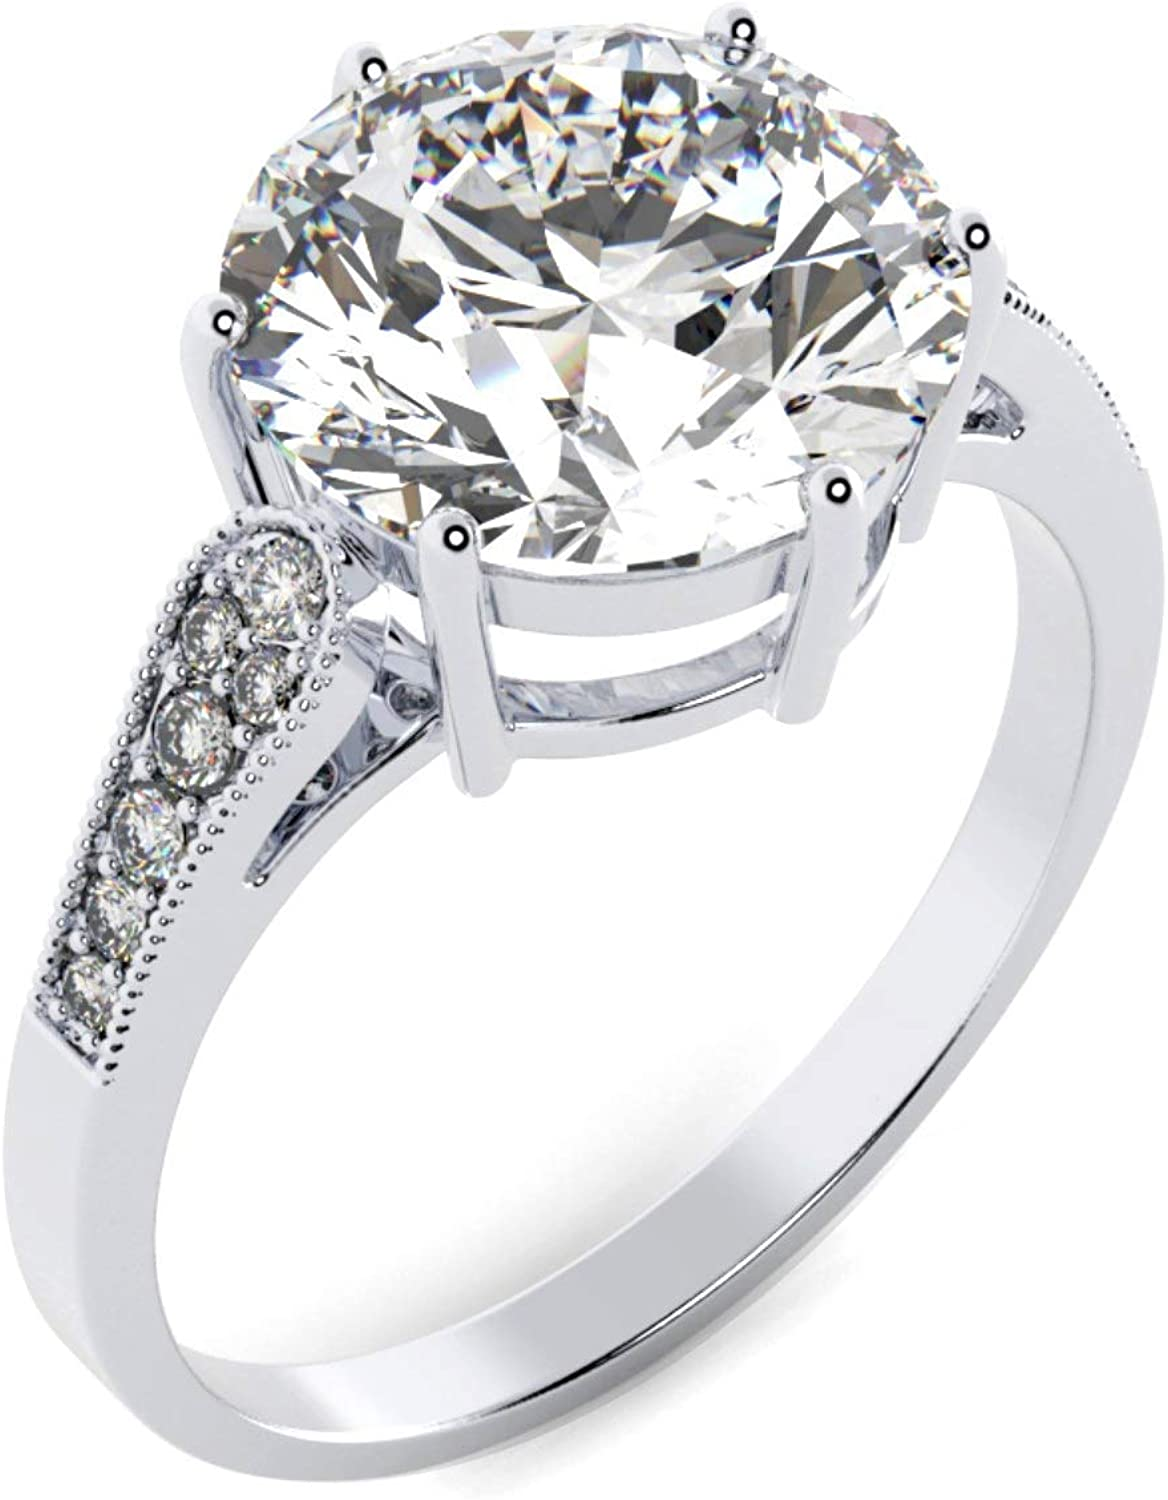 Sales Moissanite Engagement Ring New item in 6-Prong with 3.65ct 10m Solitaire